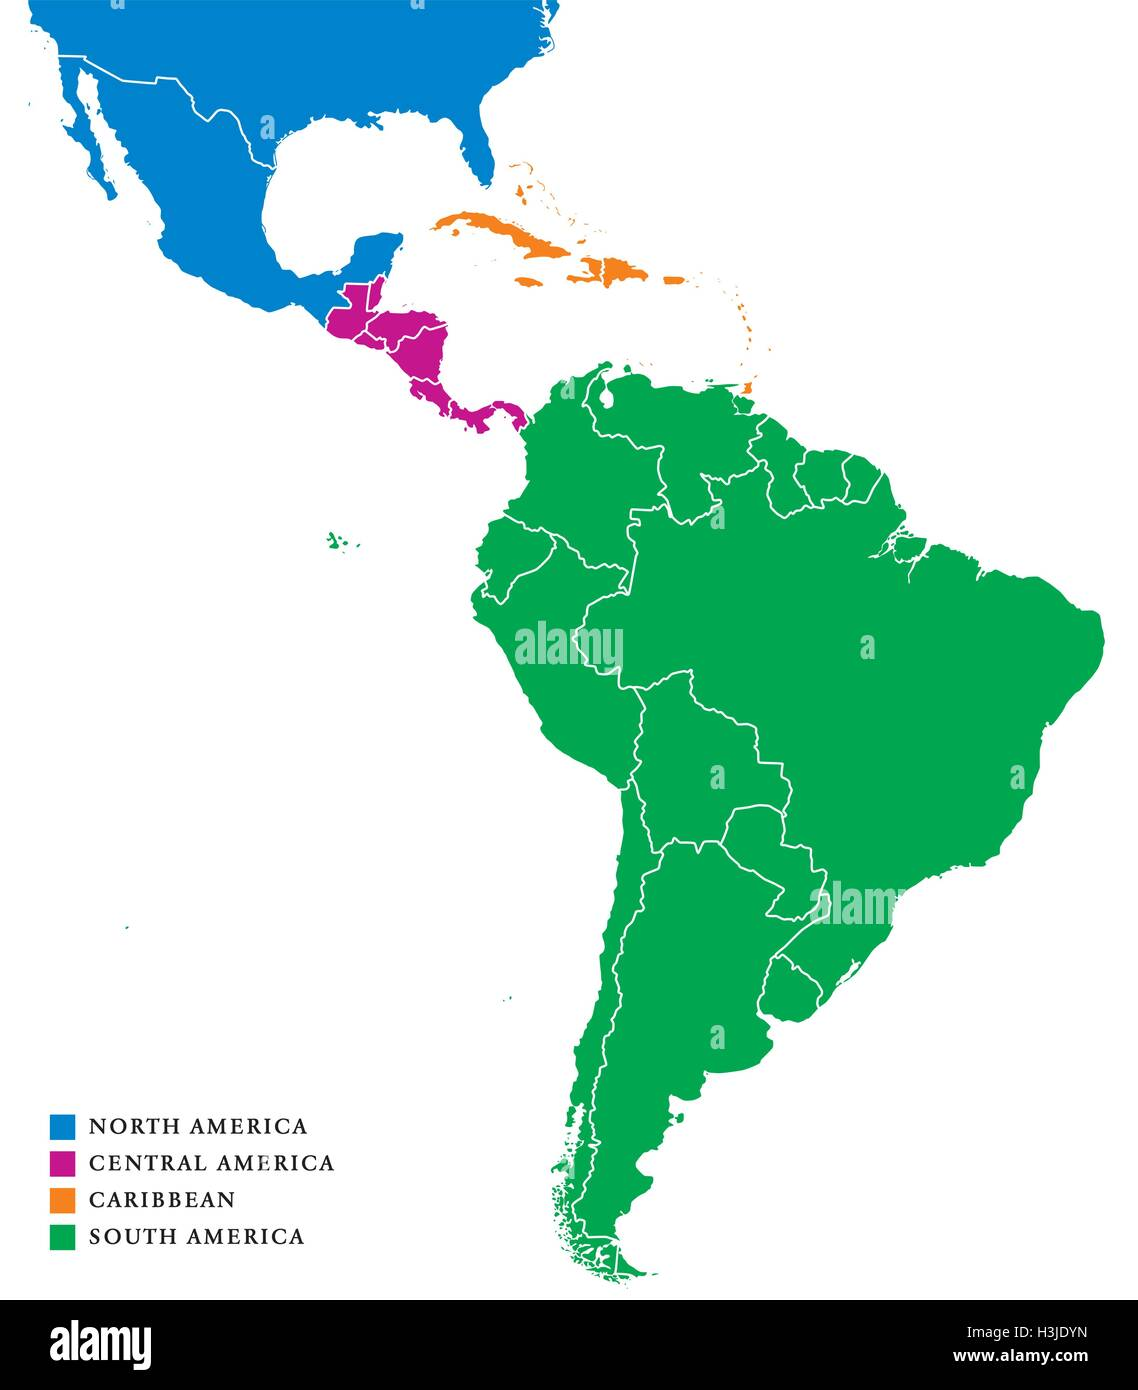 Latin America subregions map. The subregions Caribbean, North Stock ...